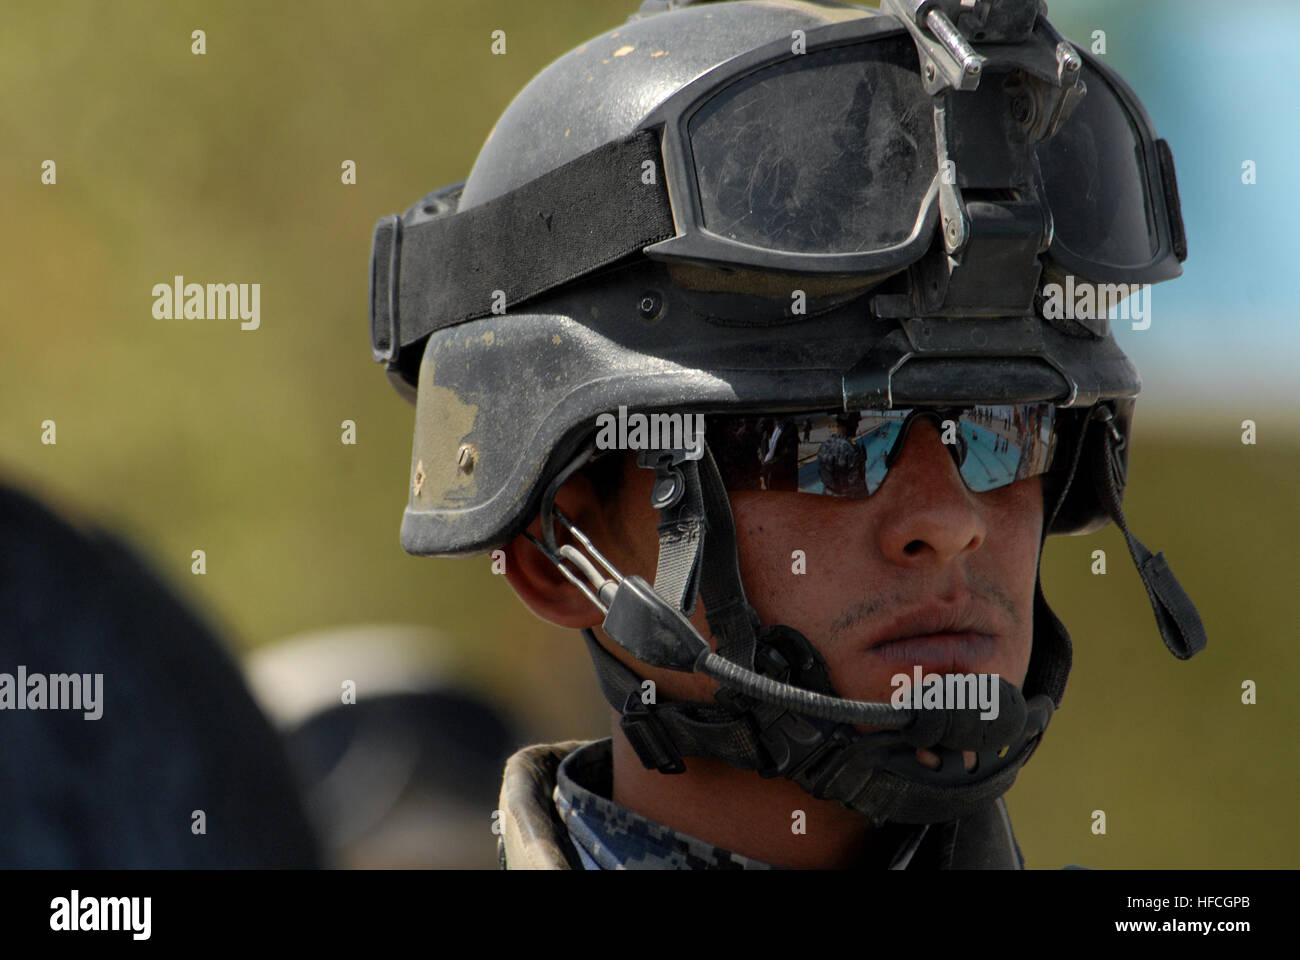 Hiide Stock Photos Amp Hiide Stock Images Alamy